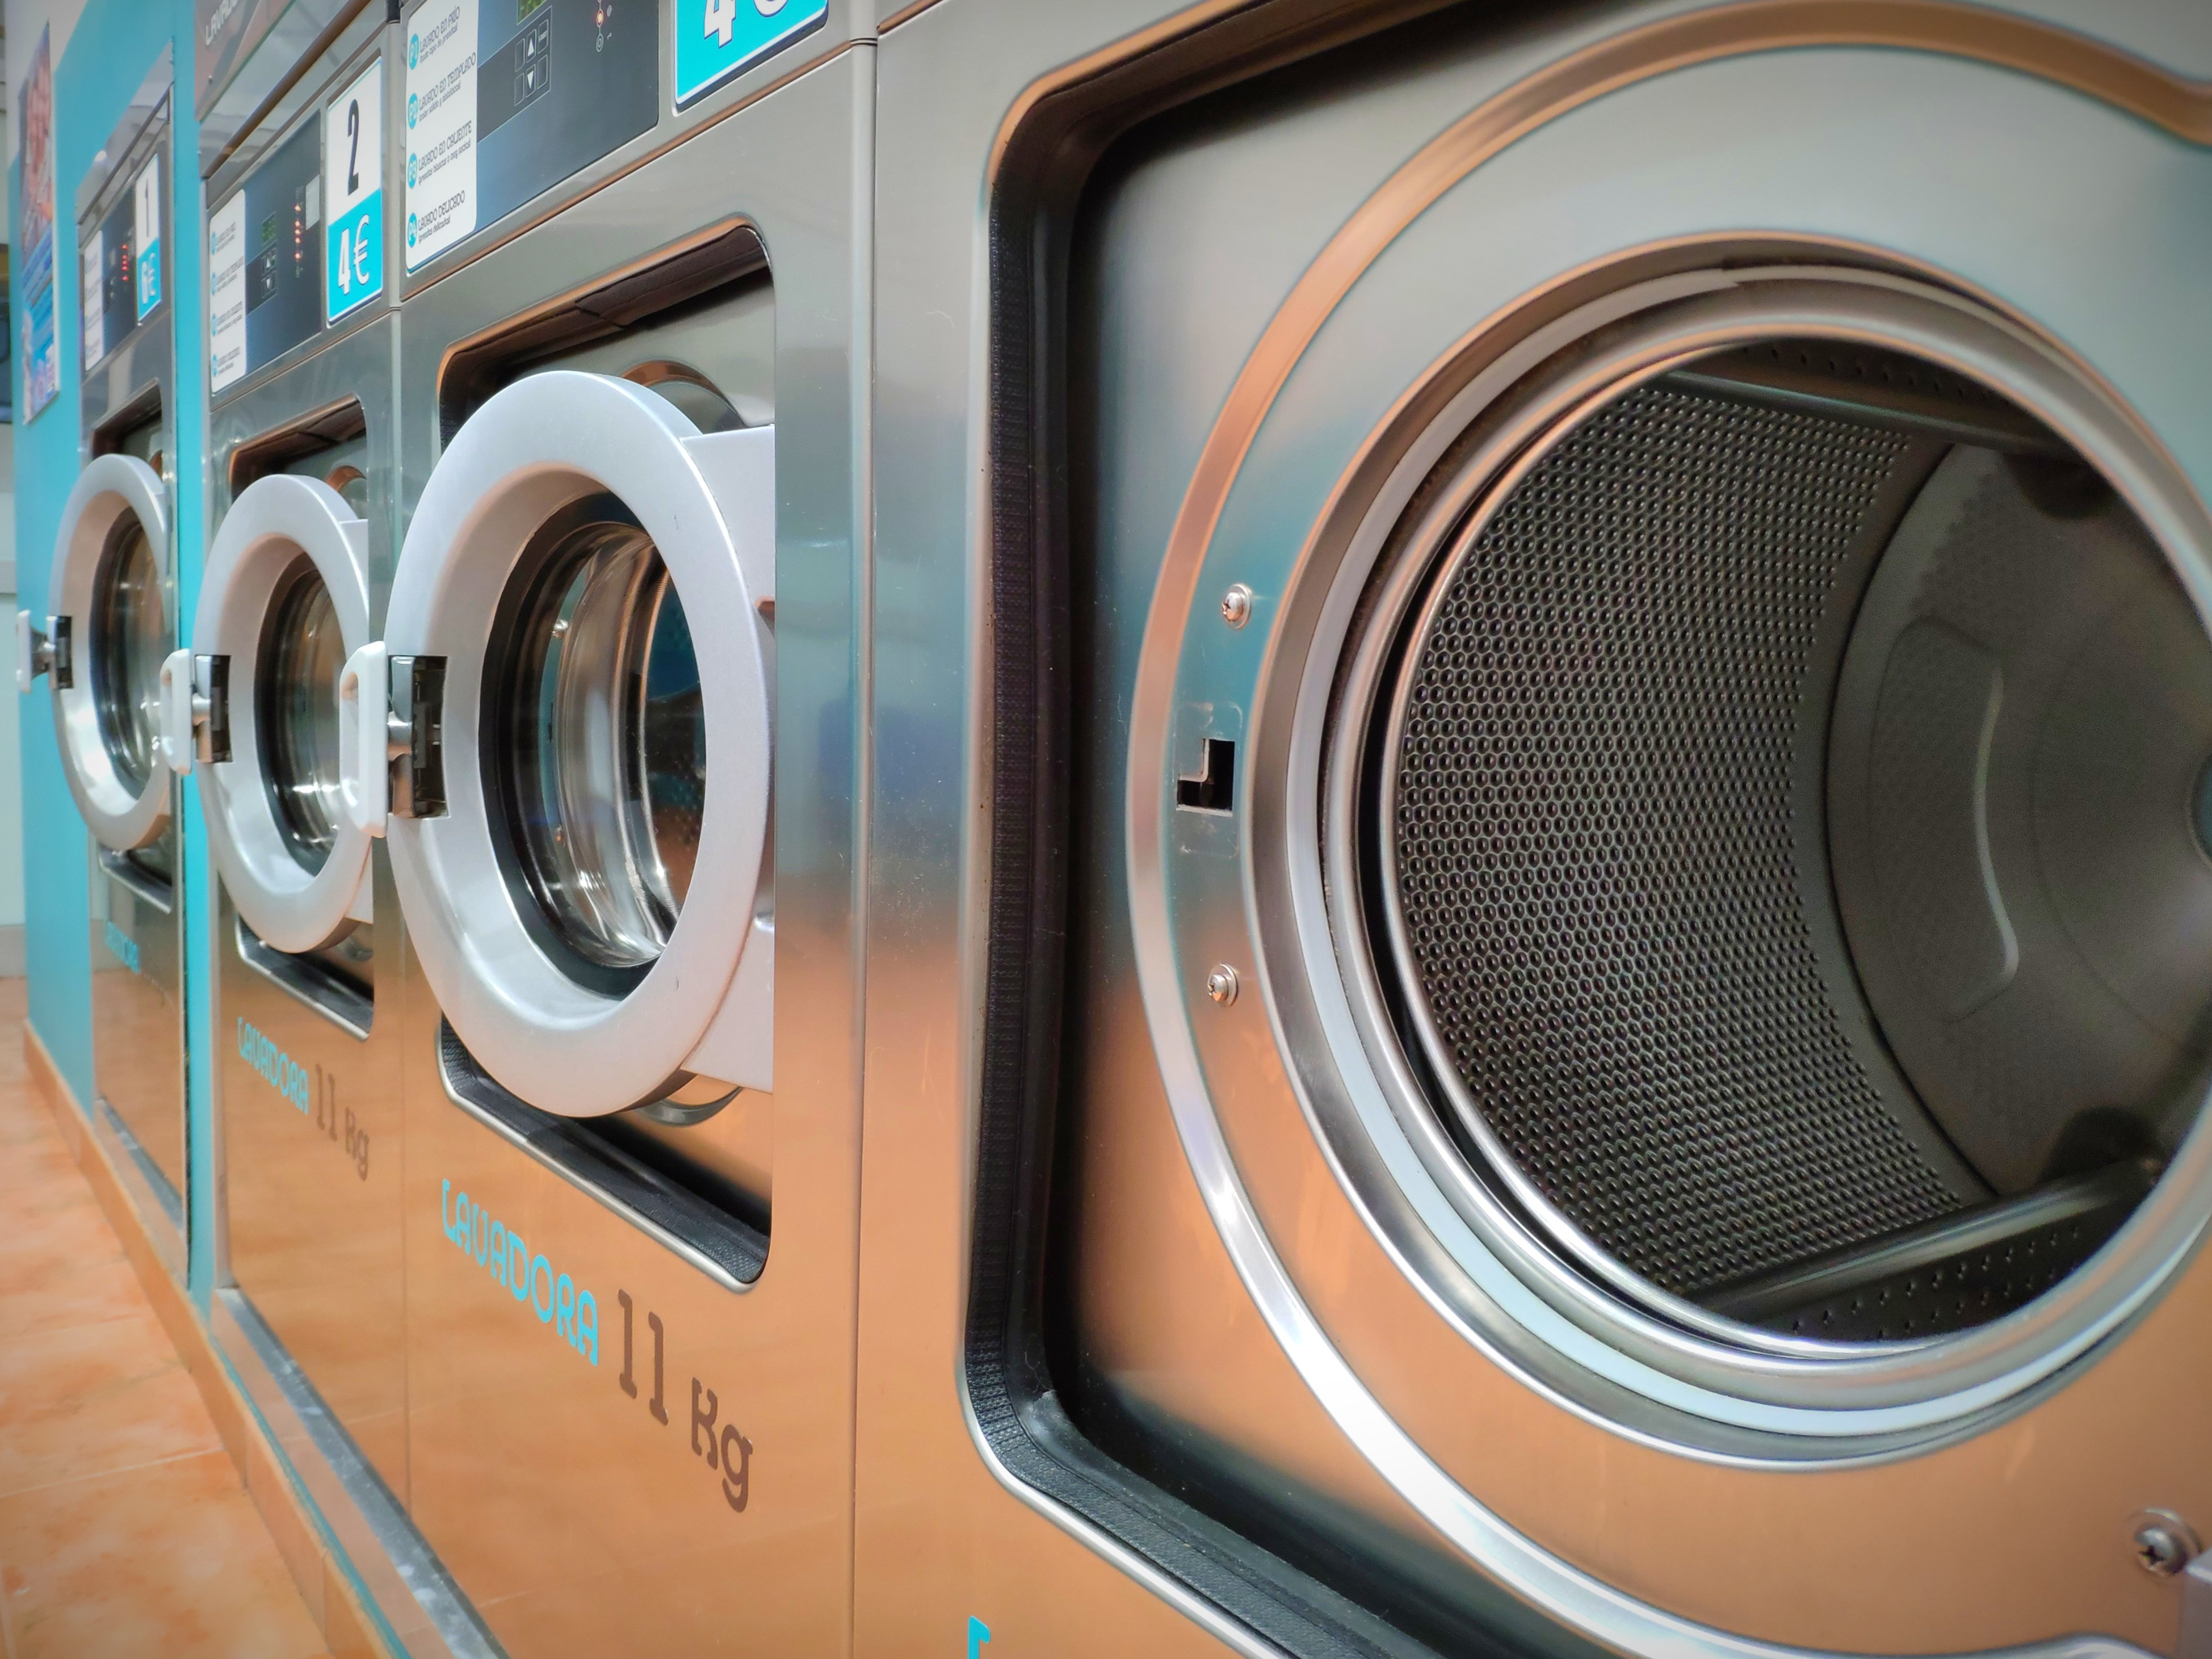 Washing machines of large capacity.